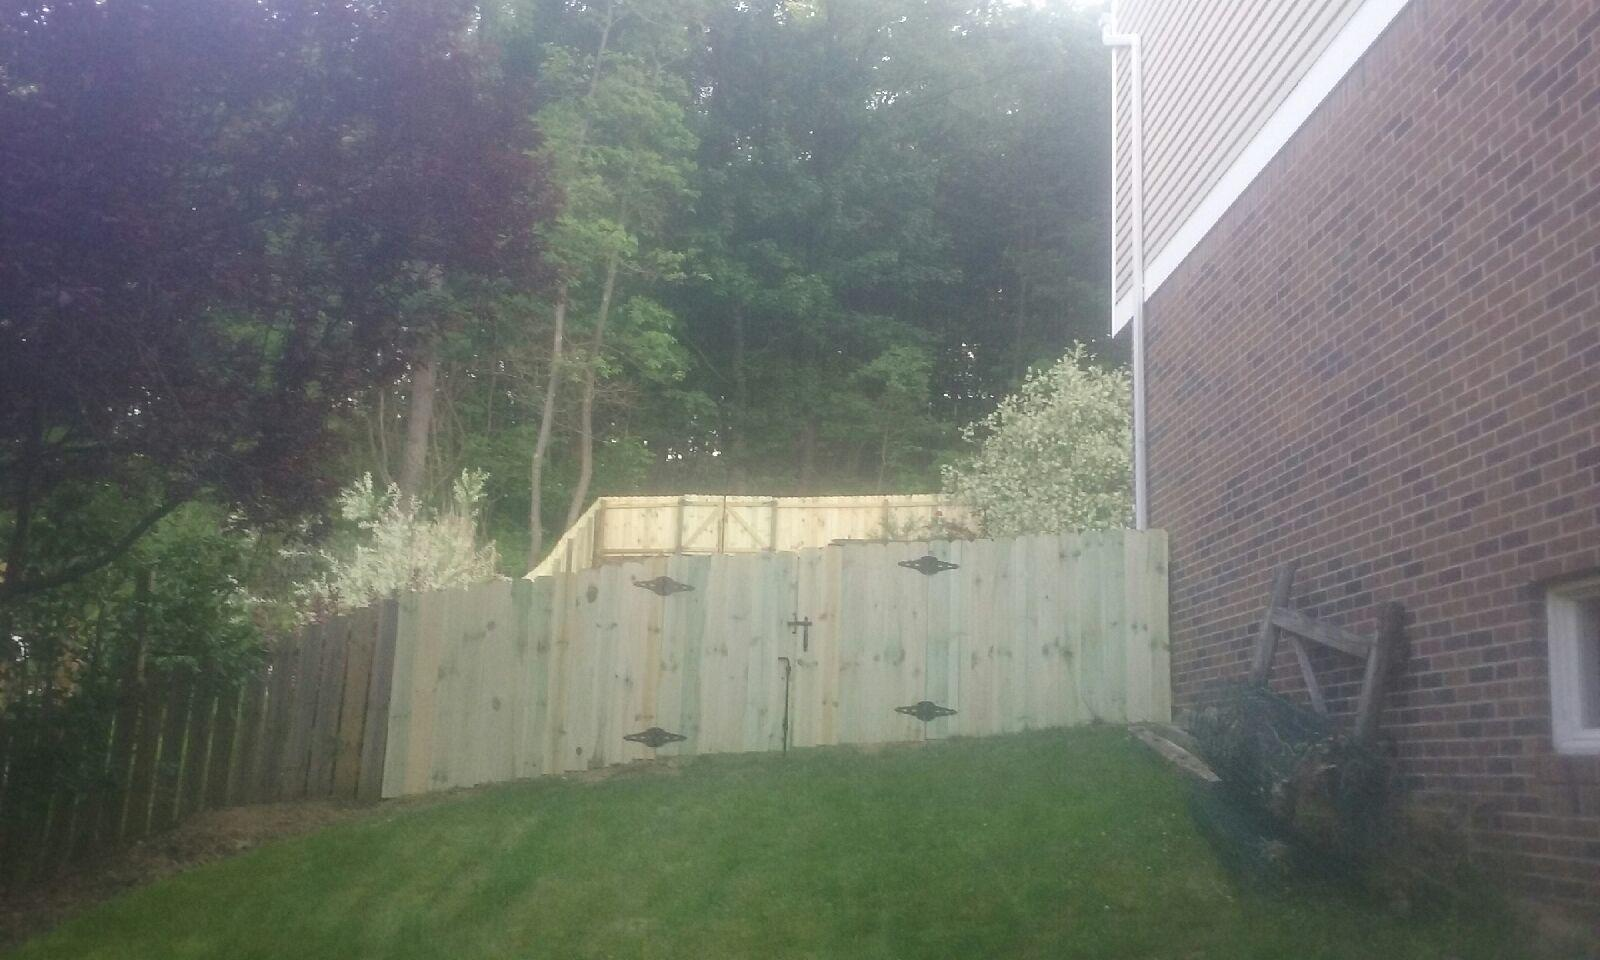 4' Treated Wood Privacy Fence Installation in Monroeville, PA - After Photo